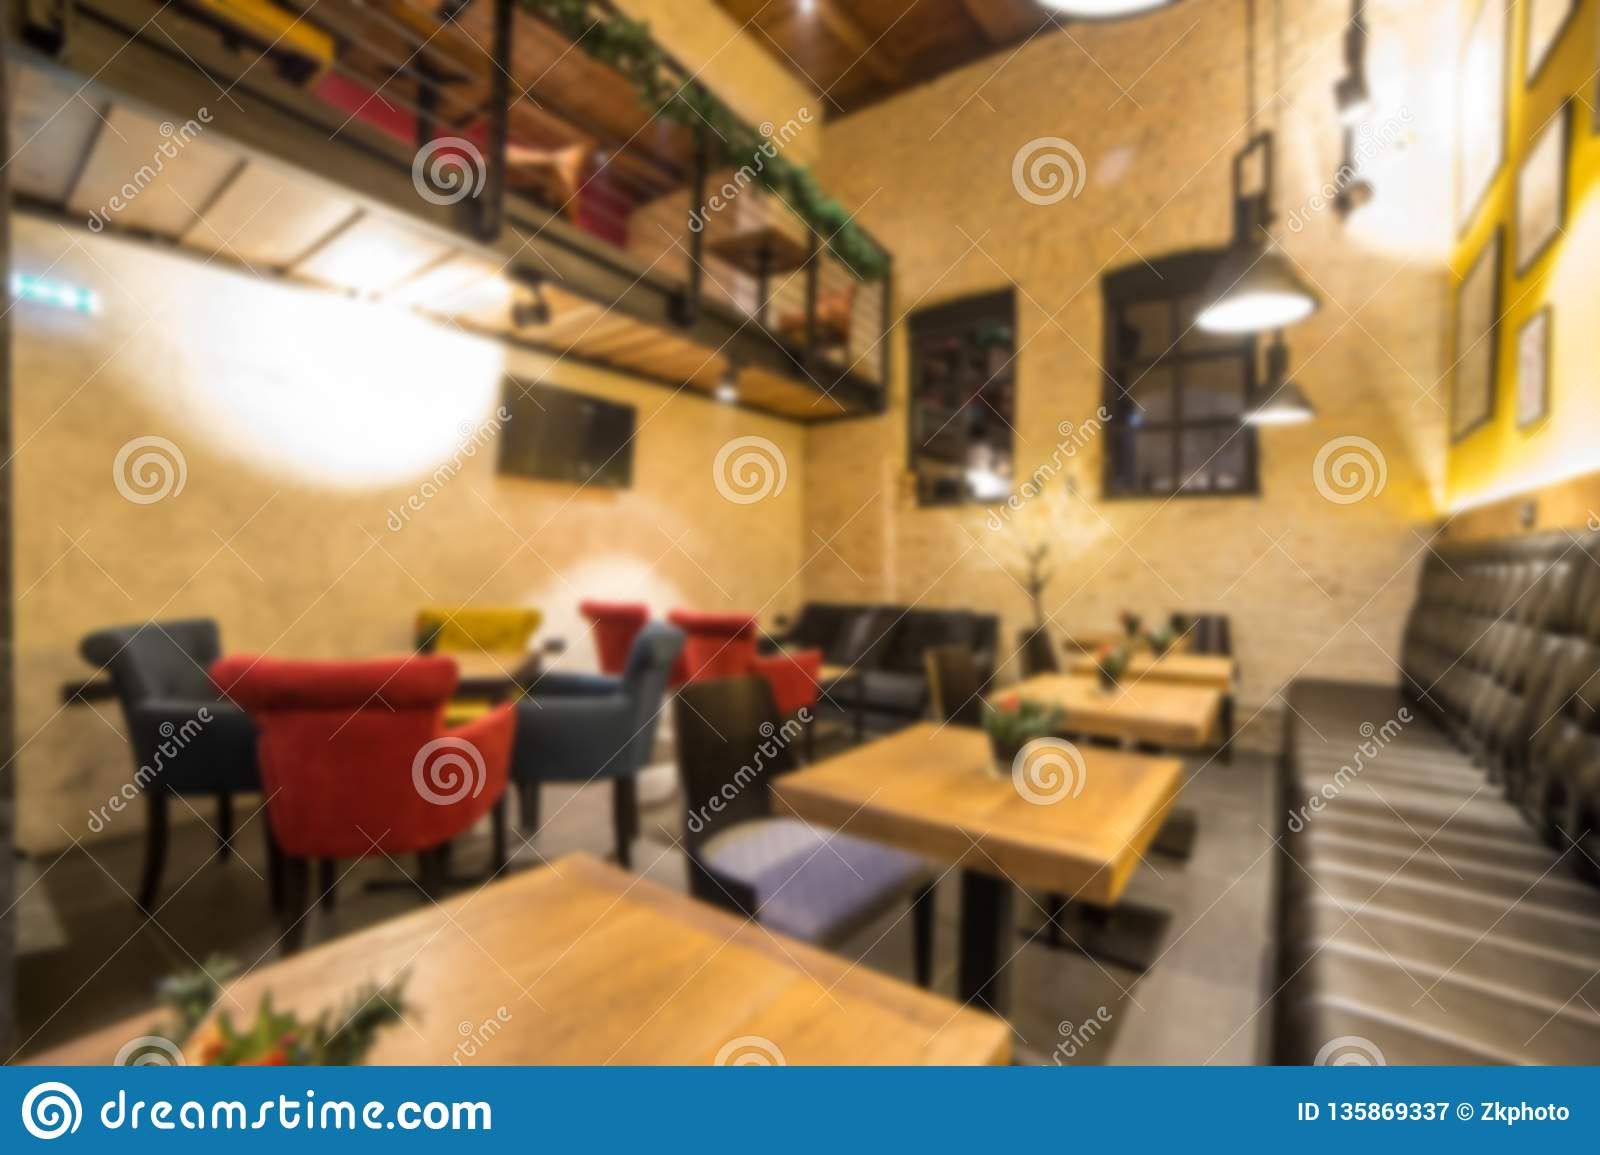 Blurred Modern Coffee Shop For Use As Background Cafe Restaurant Interior Stock Image Image Of Light Desk 135869337